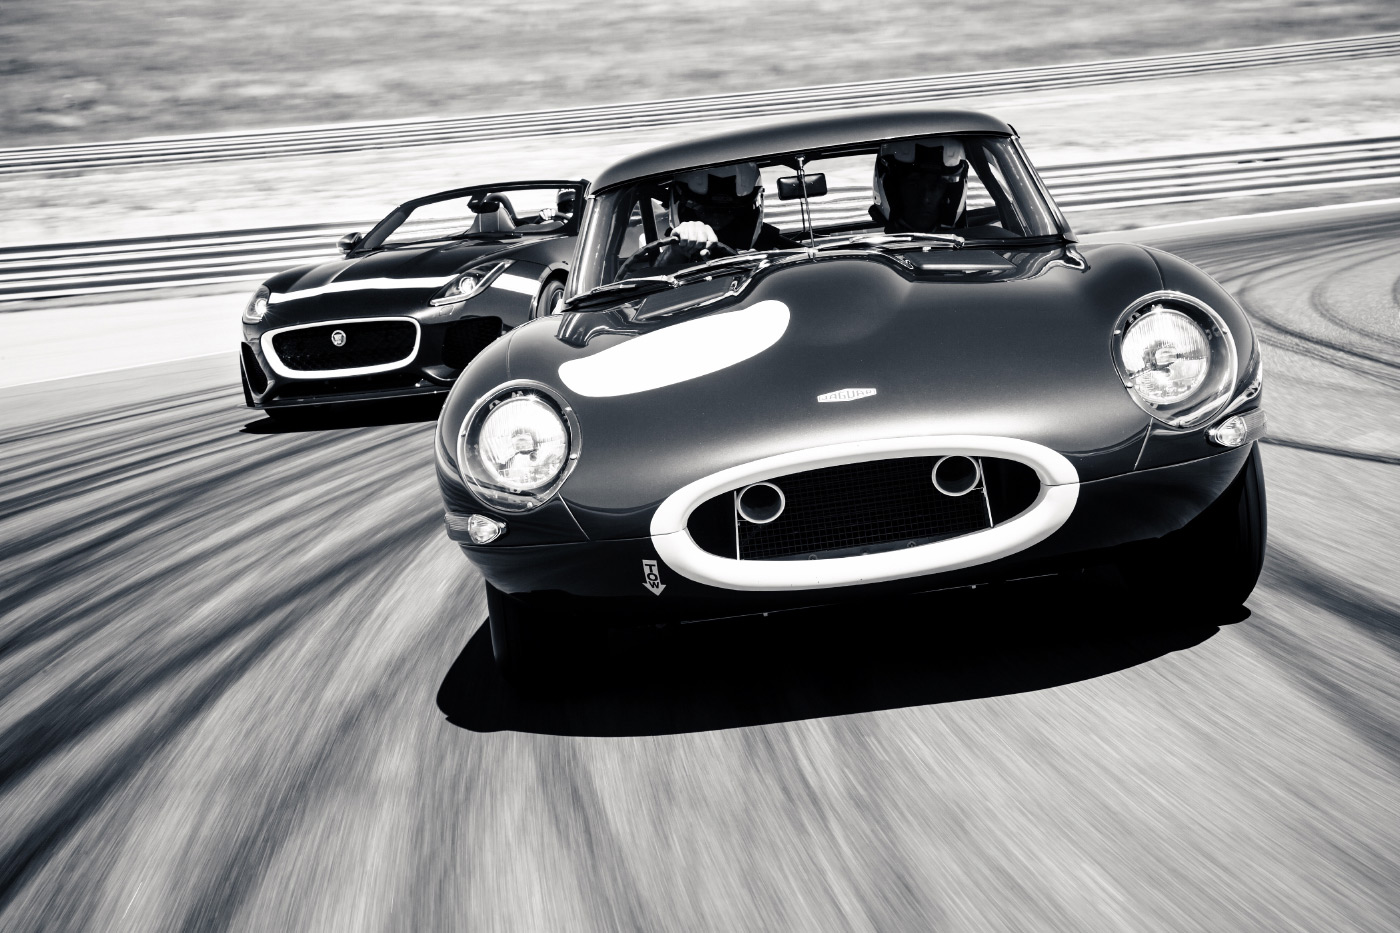 <p>Jaguar's Lightweight E-TYPE leads Project 7 at the Navarra Circuit in Northern Spain</p>